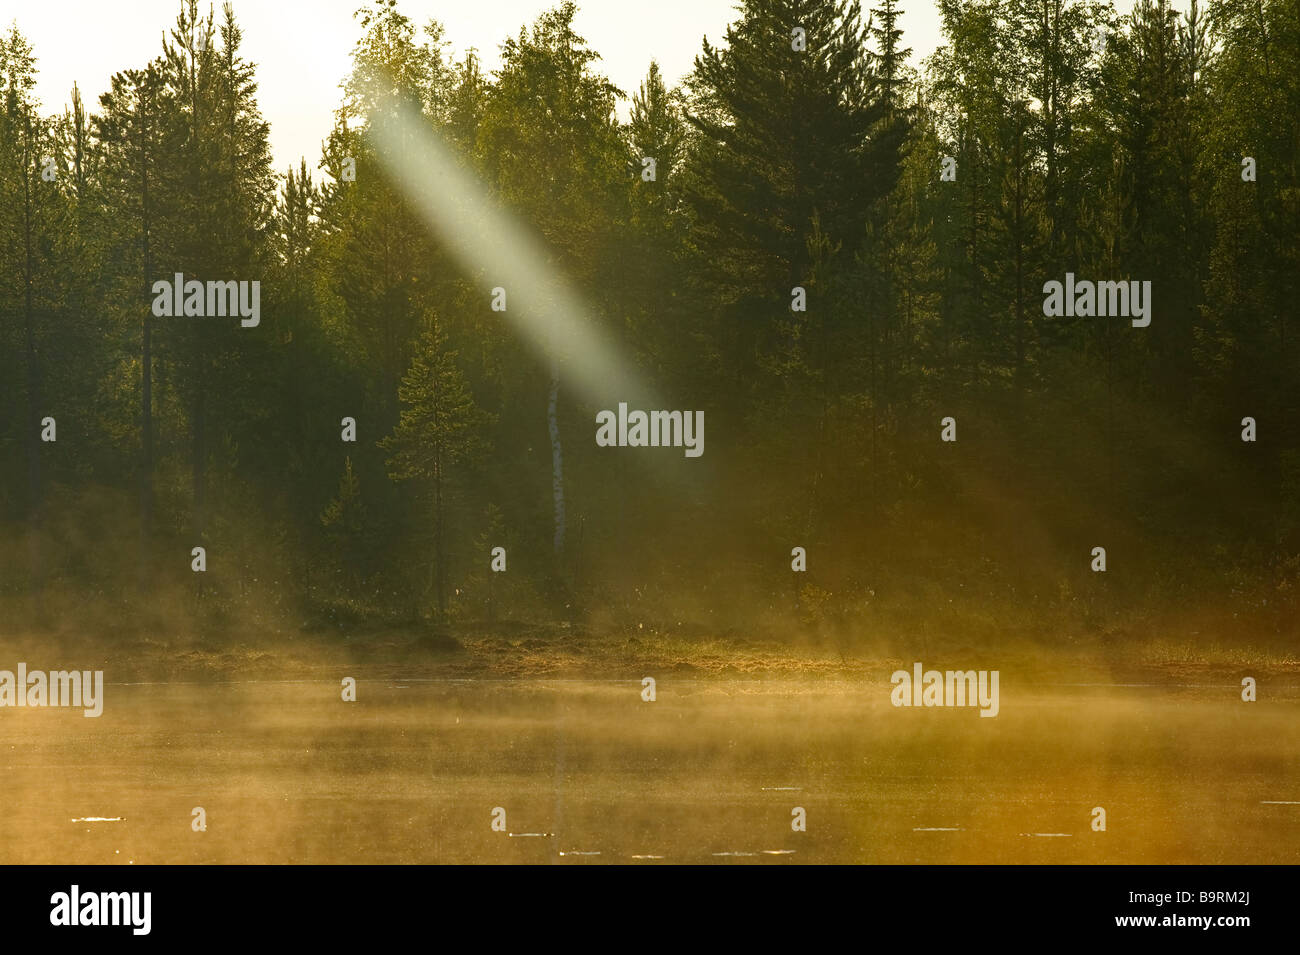 Dawn breaking in taiga forest Finland - Stock Image